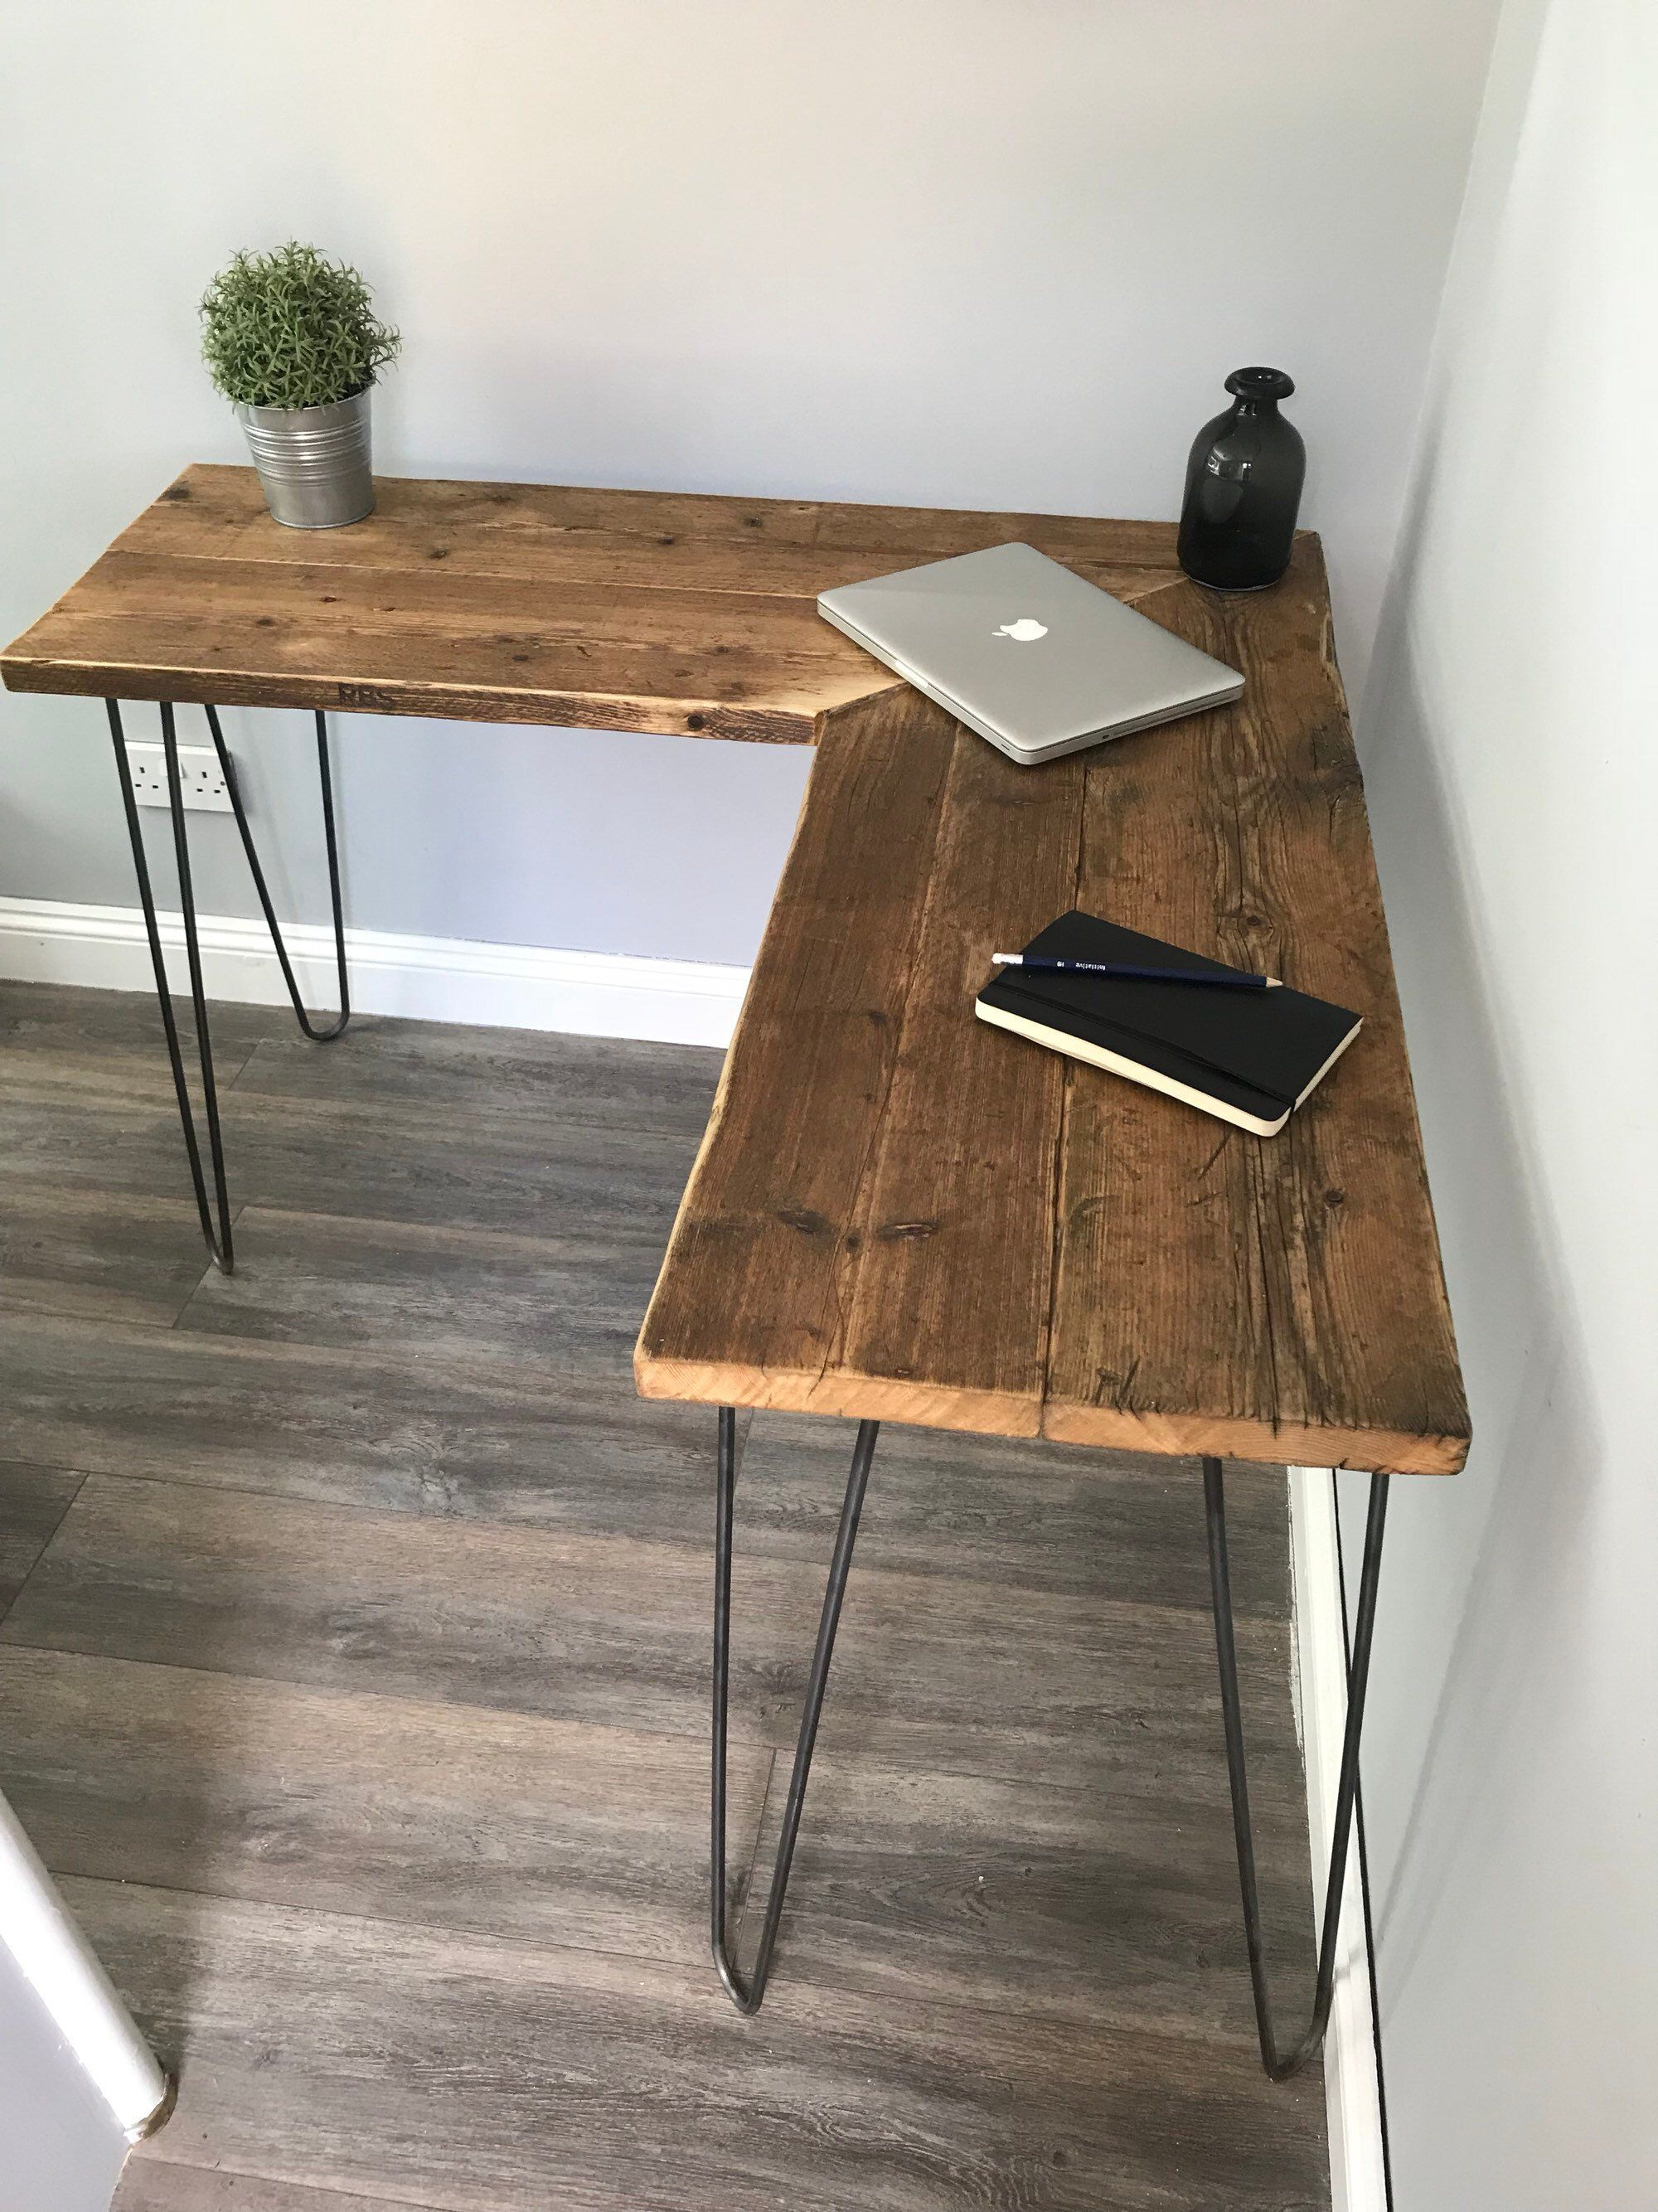 VICTORIA- Modern Rustic Industrial Reclaimed Scaffold Board Corner Desk With Hairpin Legs #stainedwood